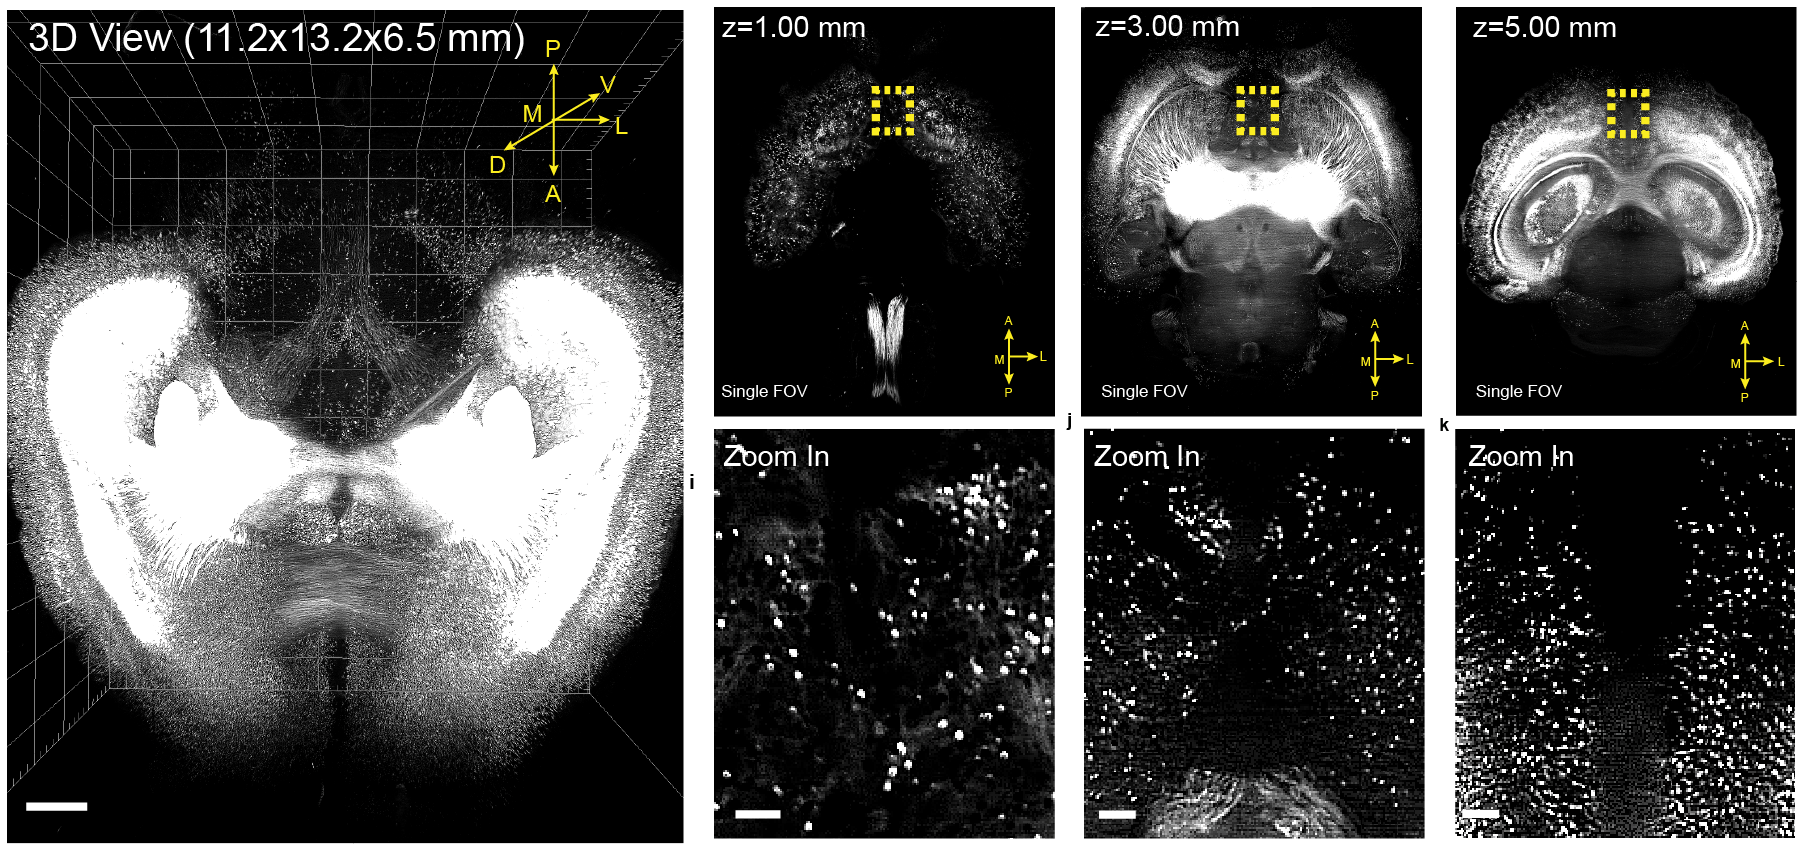 Left: three-dimensional rendering of a CLARITY-processed whole mouse brain (ArcTRAP), White: tdTomato signal. Scale bar, 500 µm. Right: Top: single FOV images at indicated imaging depths.  Bottom: zoomed in images from the yellow-boxed regions in the top row, showing cellular resolution. Scale bar, 100 µm.